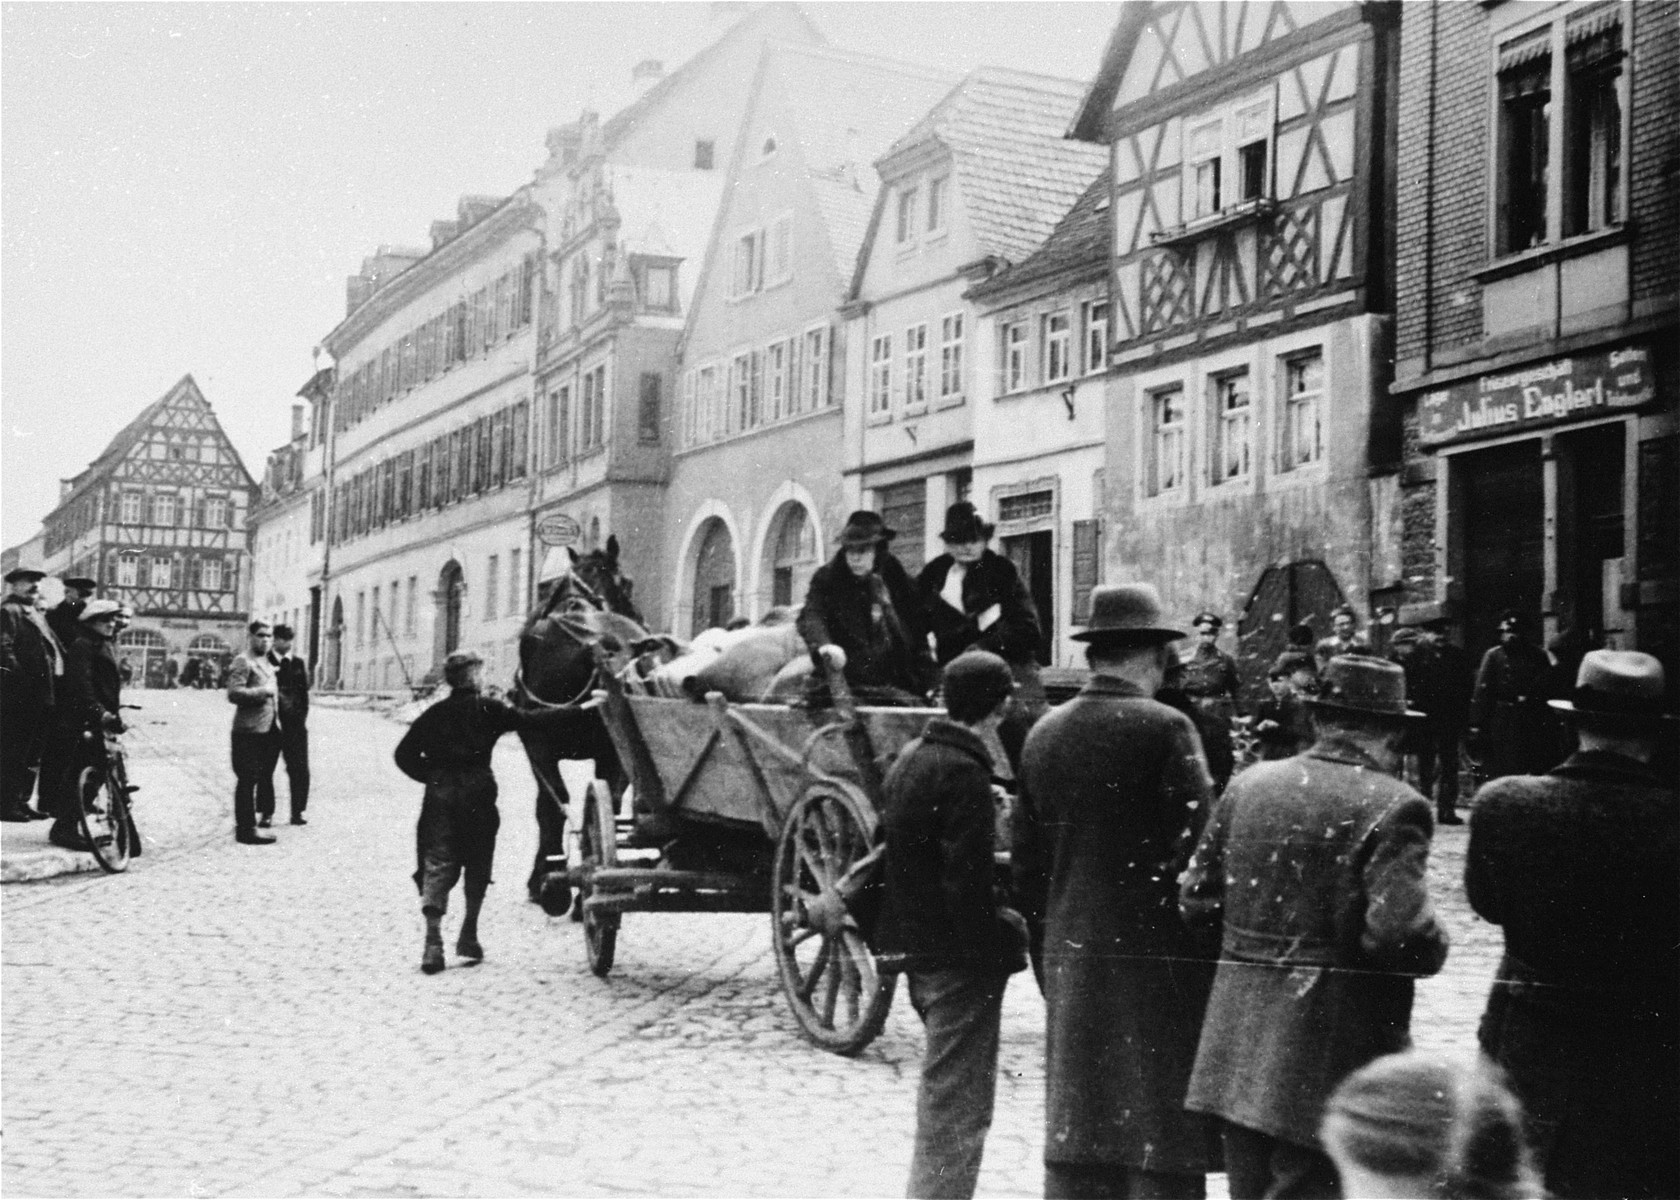 Two elderly Jewish women arrive at the Fränkischen Hof assembly center in a horse-drawn wagon during a deportation action in Kitzingen.